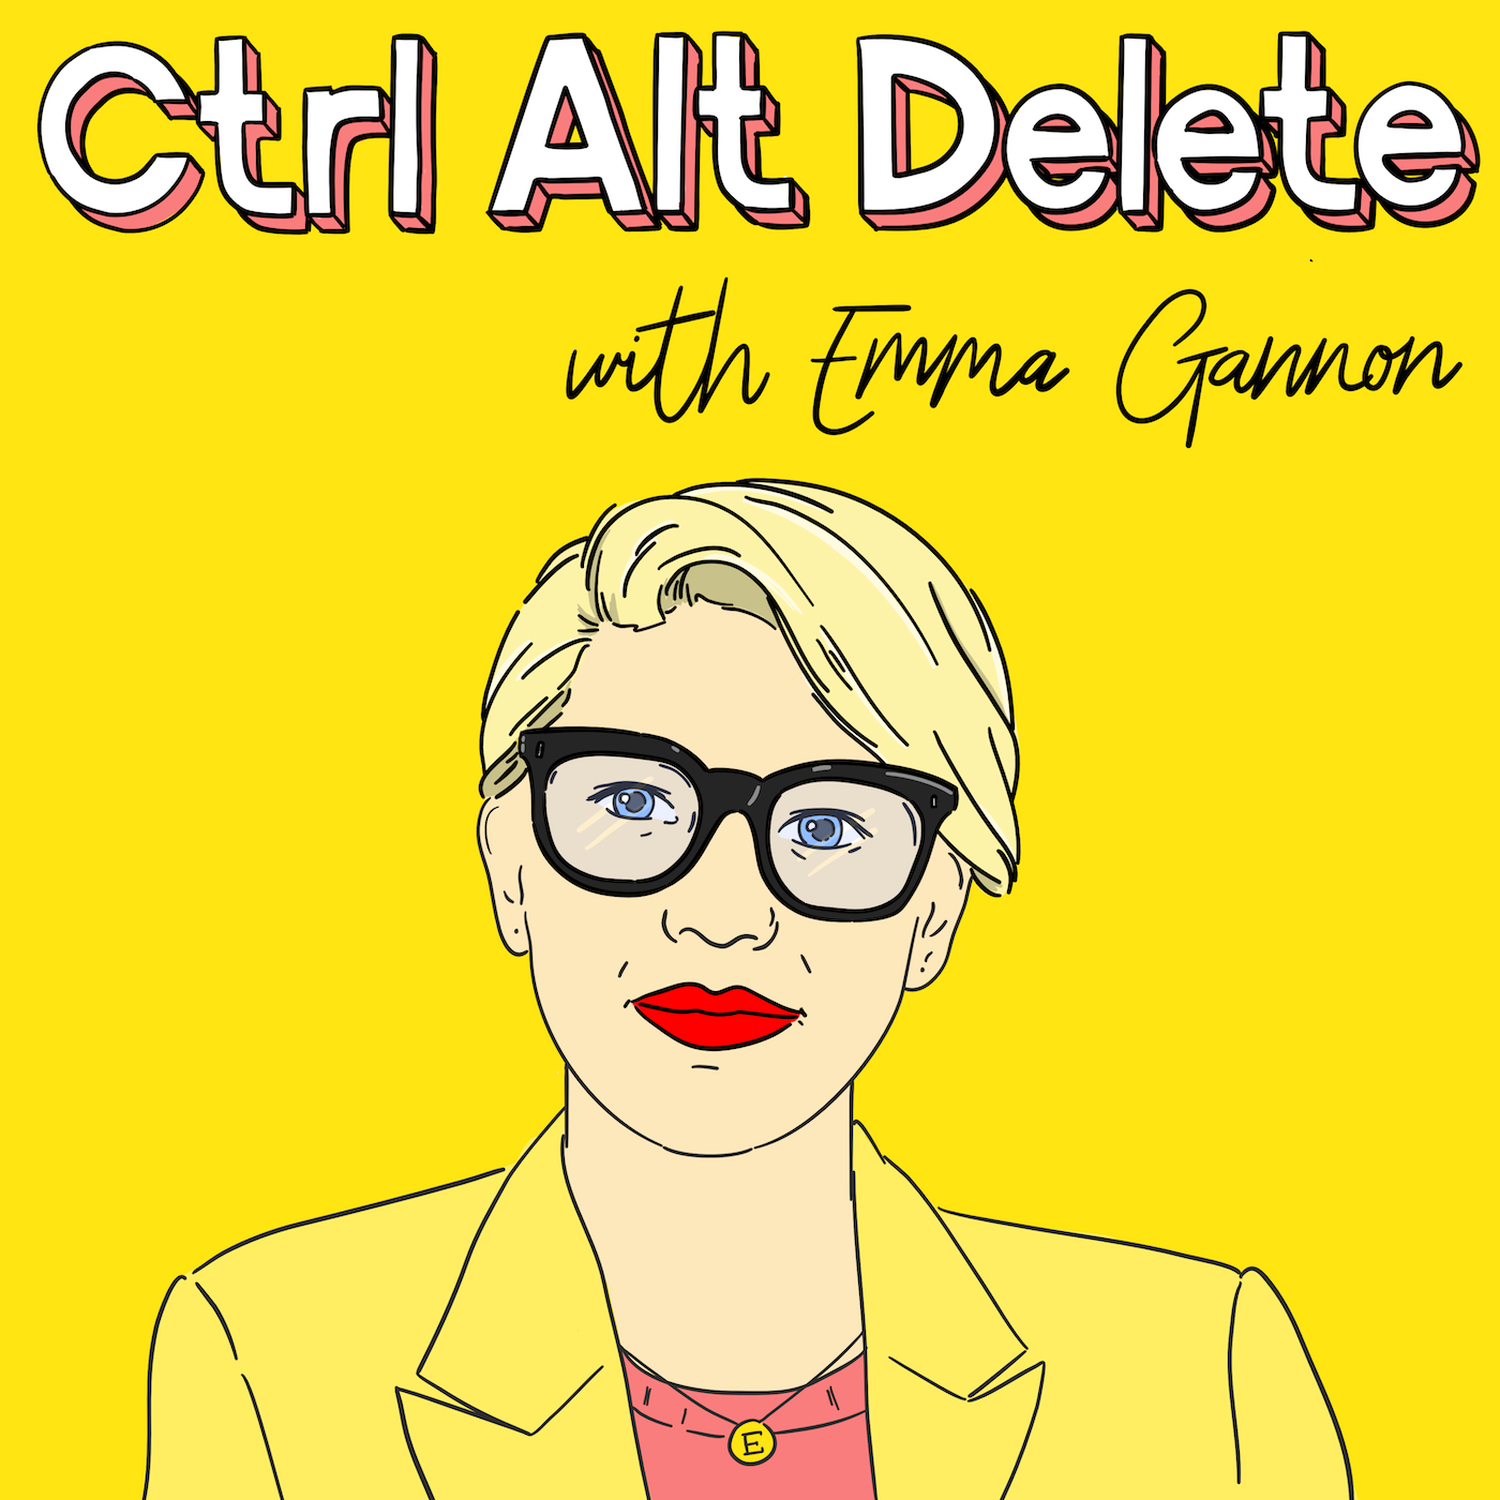 Emma Gannon interviews people she admires about creativity, work, wellbeing, the internet, social media, feminism, identity, mental health, careers and everything in between. -